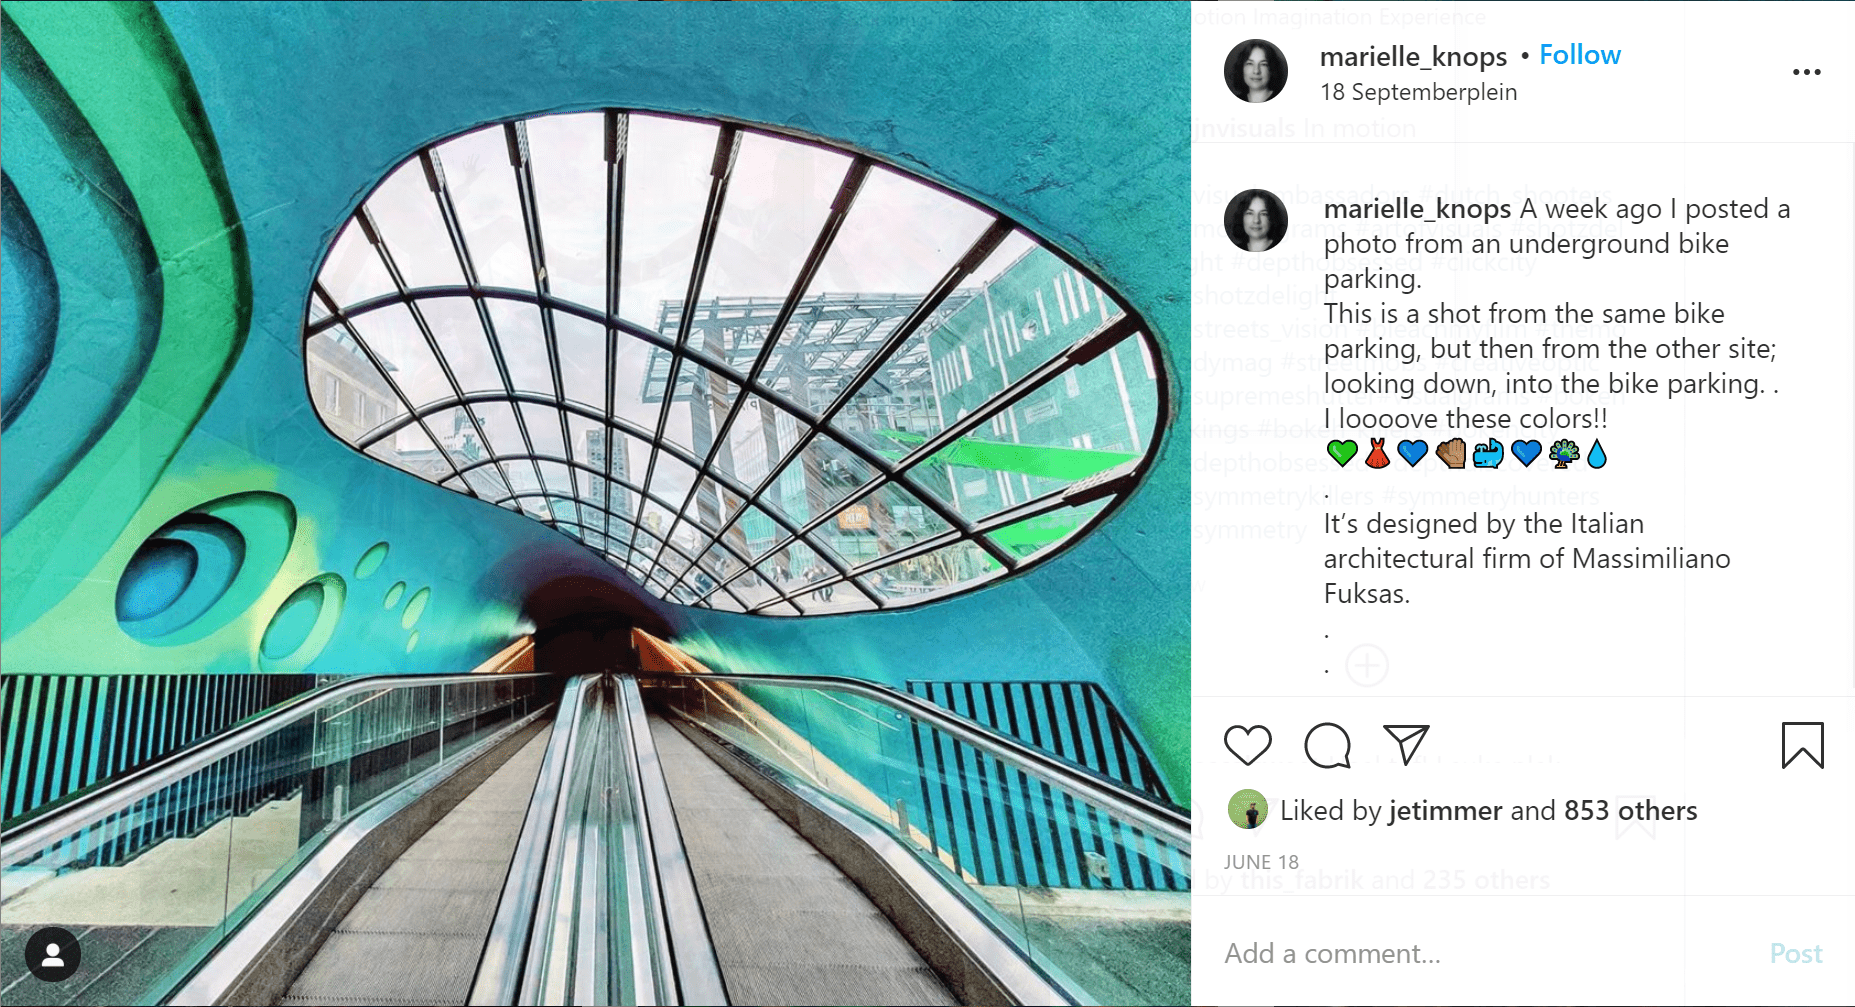 turquoise dome with circular sky windows above two escalators